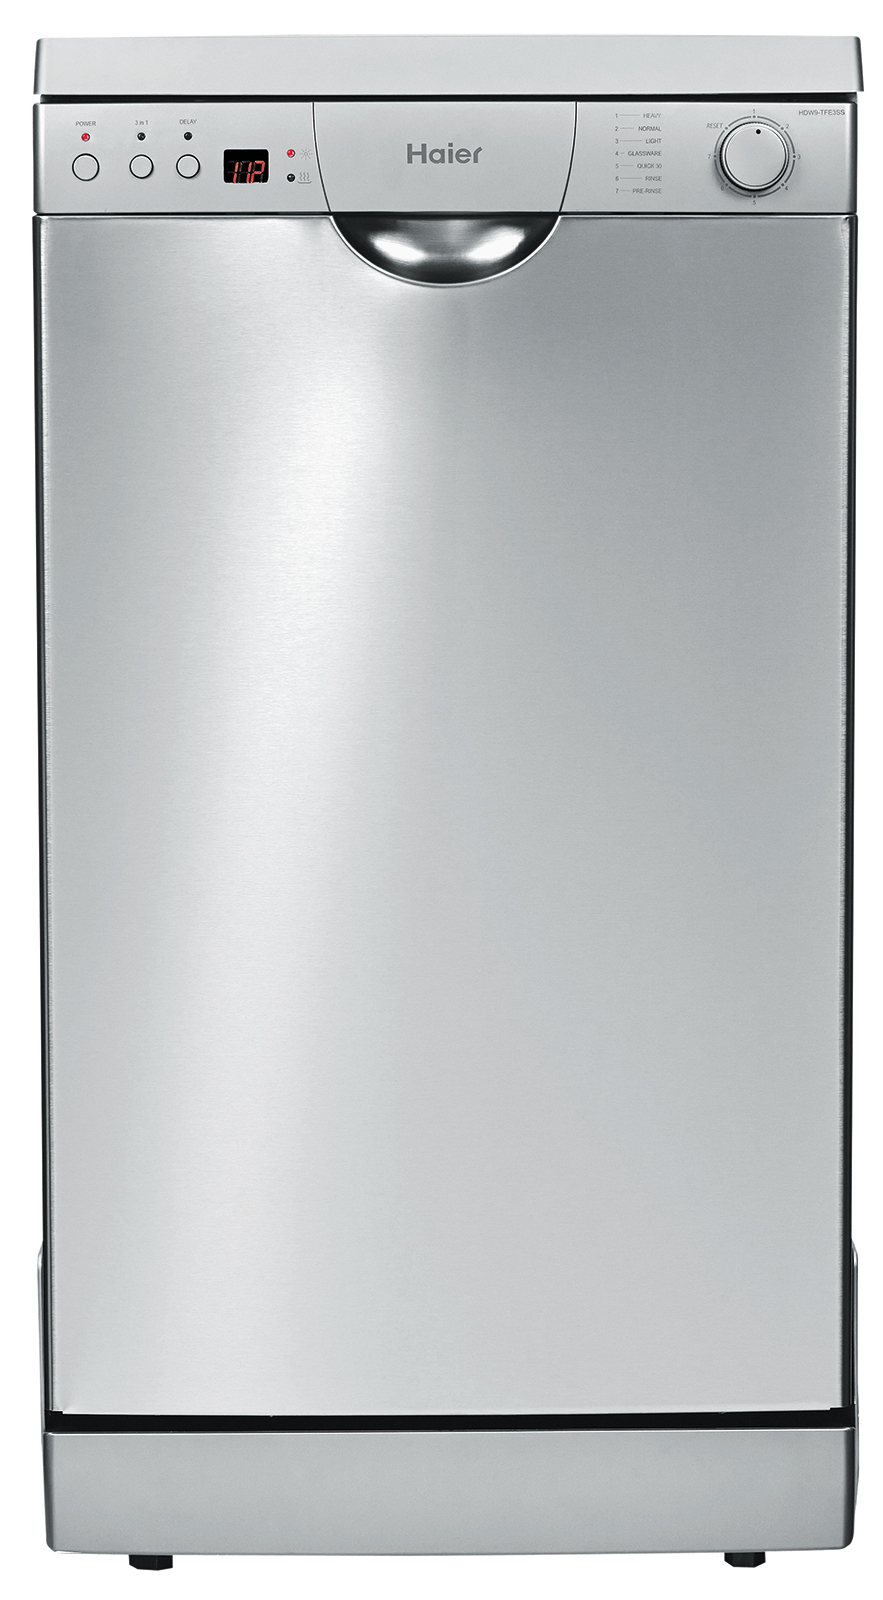 Haier HDW9TFE3SS Dishwasher